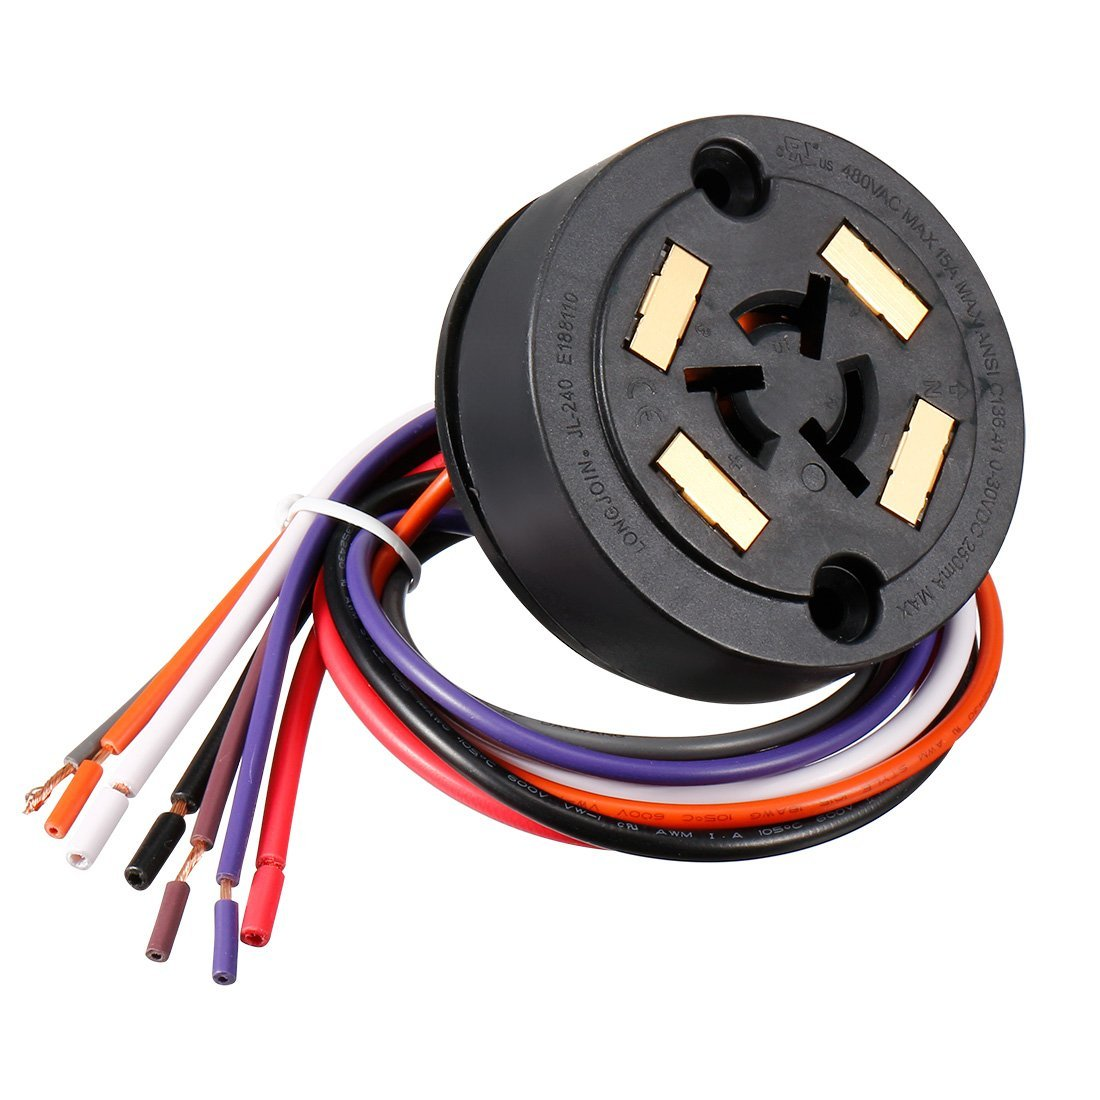 Competitive Price Te Connectivity 4 Signal Contact ANSI C136.41 Rotatable Dimming Receptacle